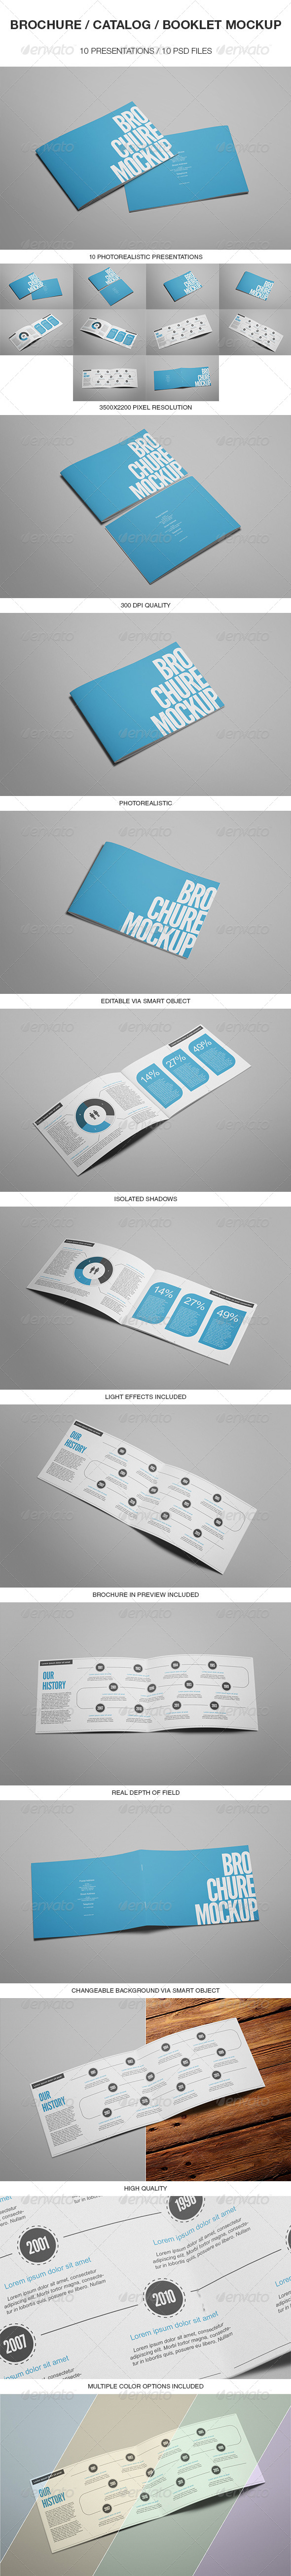 Brochure / Catalog / Booklet Mockup - Brochures Print